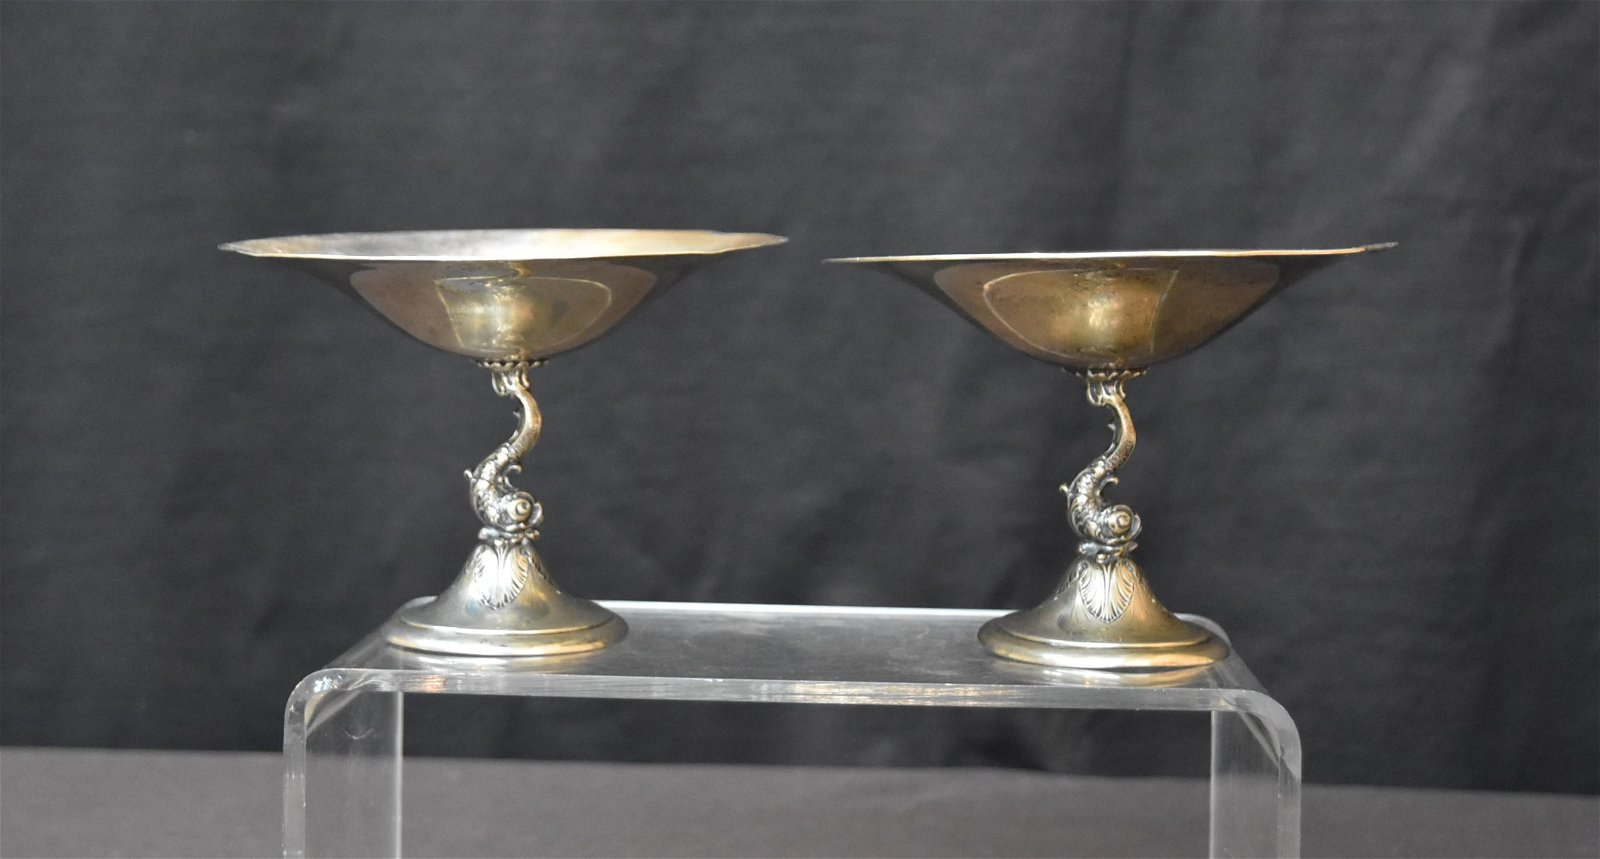 (Pr) W.W. WATTLE & SONS STERLING SILVER COMPOTES